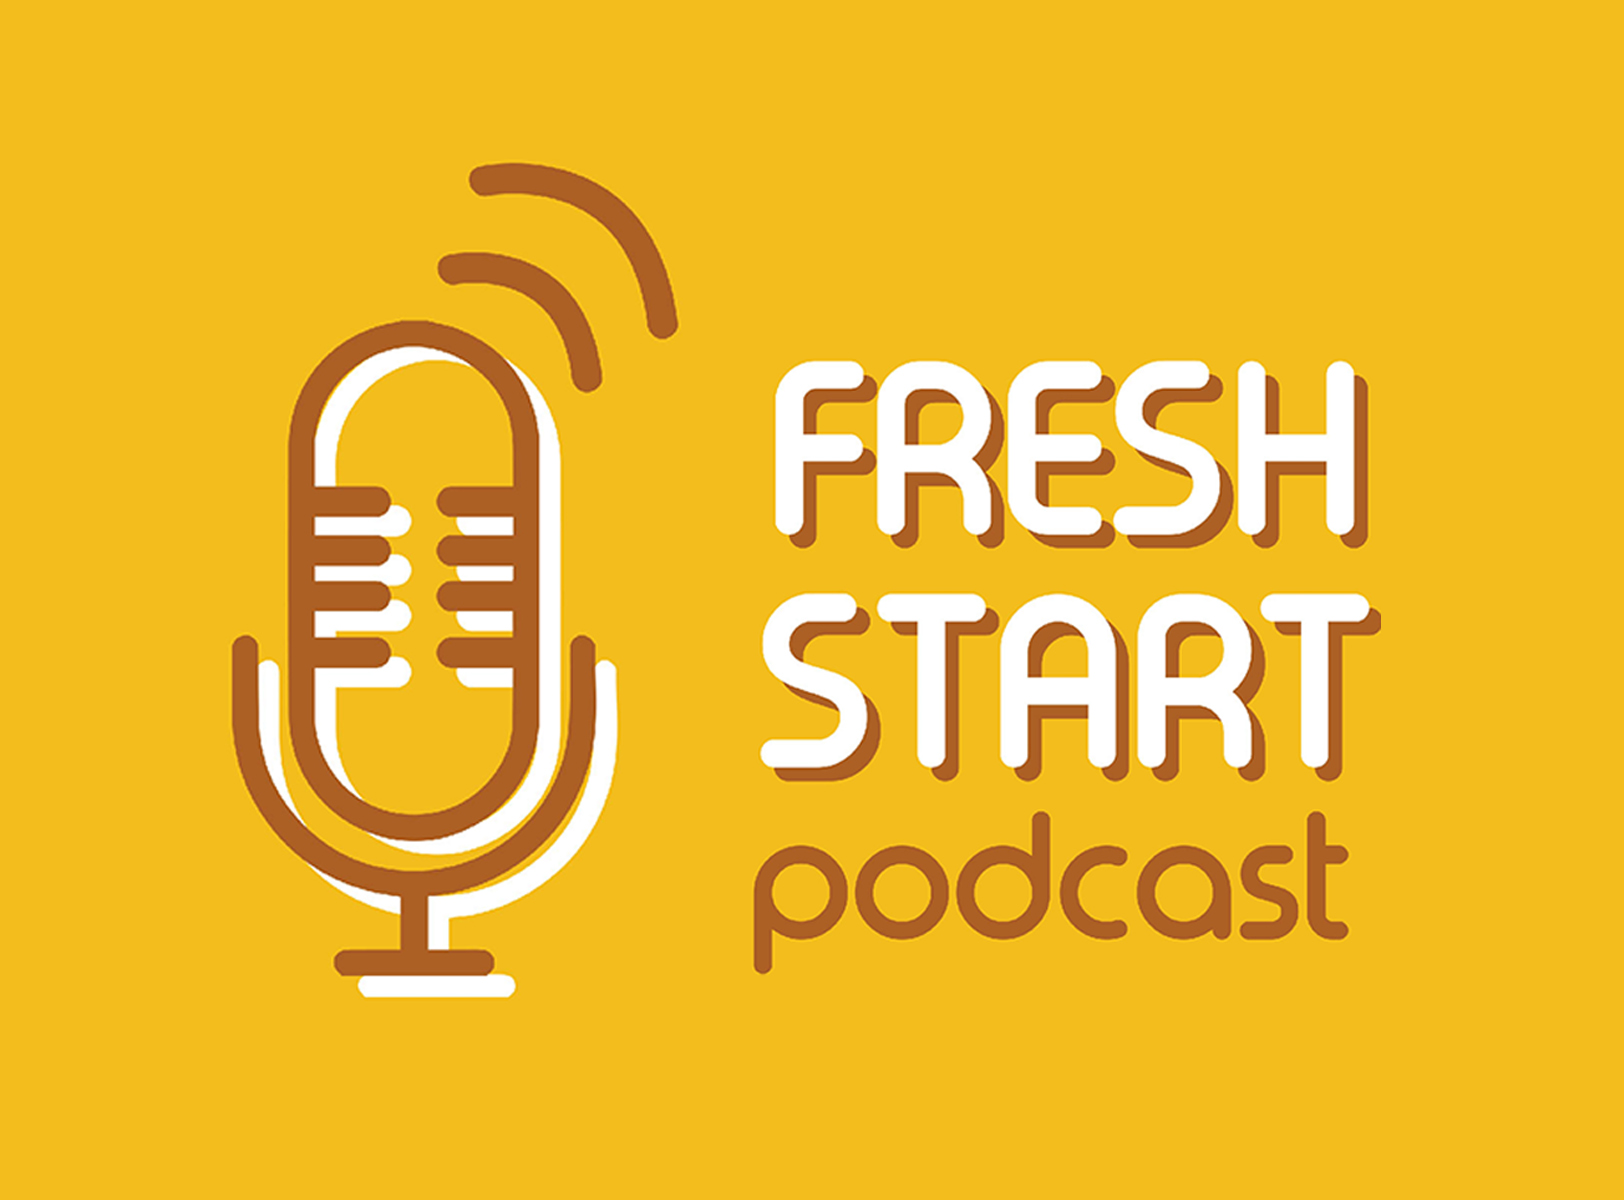 Fresh Start: Podcast News (8/23/2018 Thu.)